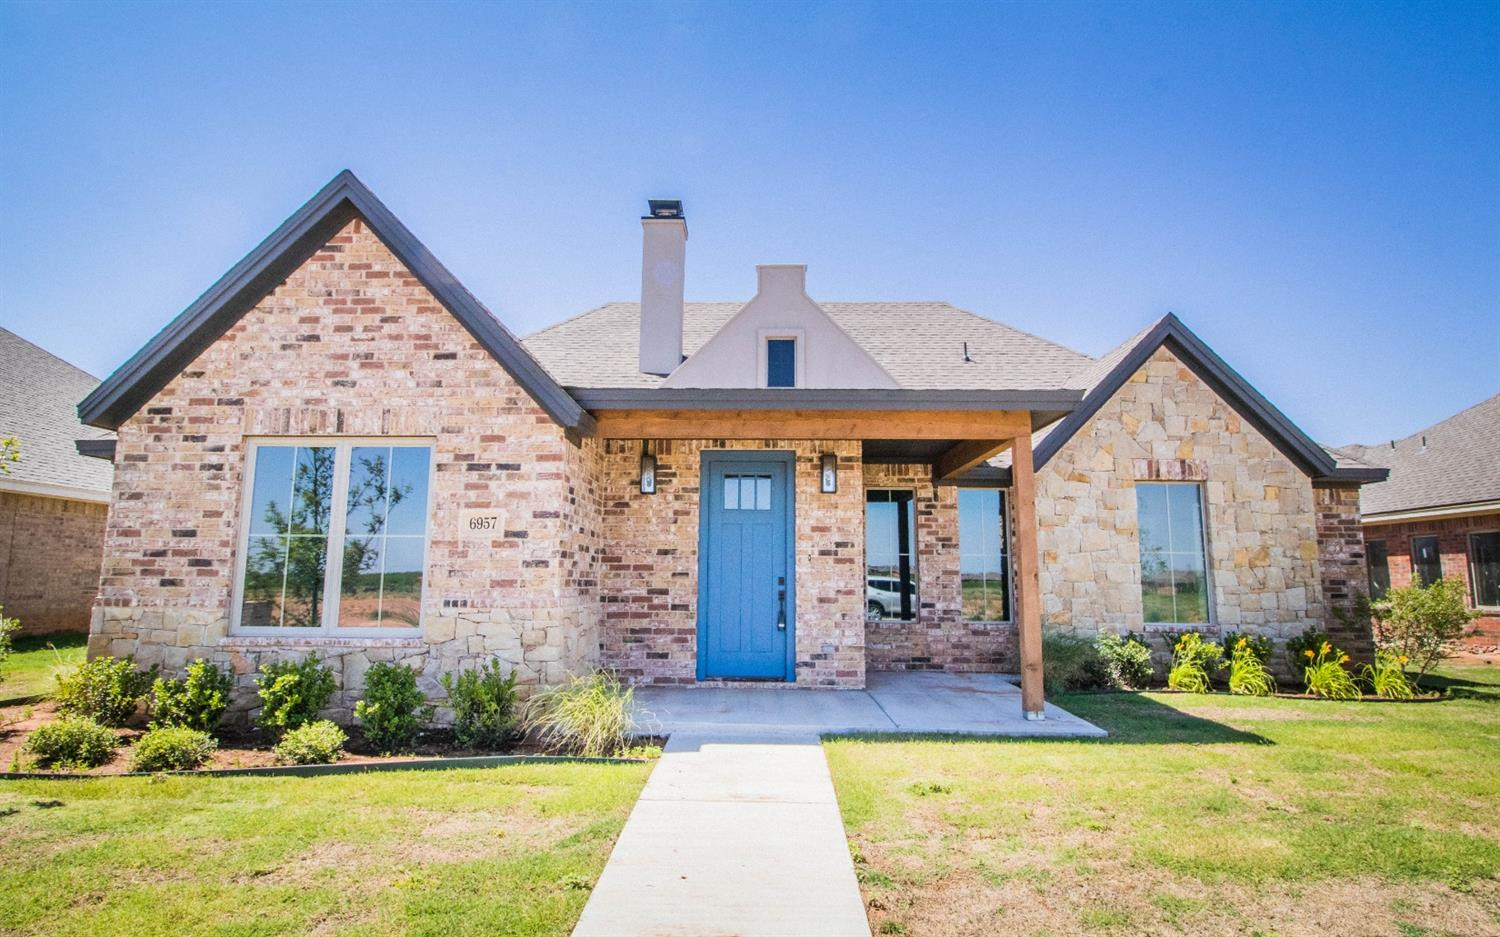 Cody Craig Custom Homes presents this 4/3/2 located in one of Lubbock's newest communities, The Ridge-located off 102nd Upland Ave. across the street from Frenship's Upland Heights elementary! This well designed floorplan offers an open concept living/kitchen with soaring ceilings, vinyl plank flooring, and a cozy gas fireplace. You'll swoon over this kitchen with a breakfast bar, granite countertops, beautiful range, and amazing fixtures and gorgeous lighting. The Master is a true retreat featuring double sinks, a free standing tub, beautifully tiled shower, re-circulating hot water, and a fabulous closet. The additional bedrooms boast vaulted ceilings with ceiling fans and are ideal for the growing family or guests. Other amenities include a mudroom area, desk and sprinkler system in front and back! This home is ready for a NEW OWNER!